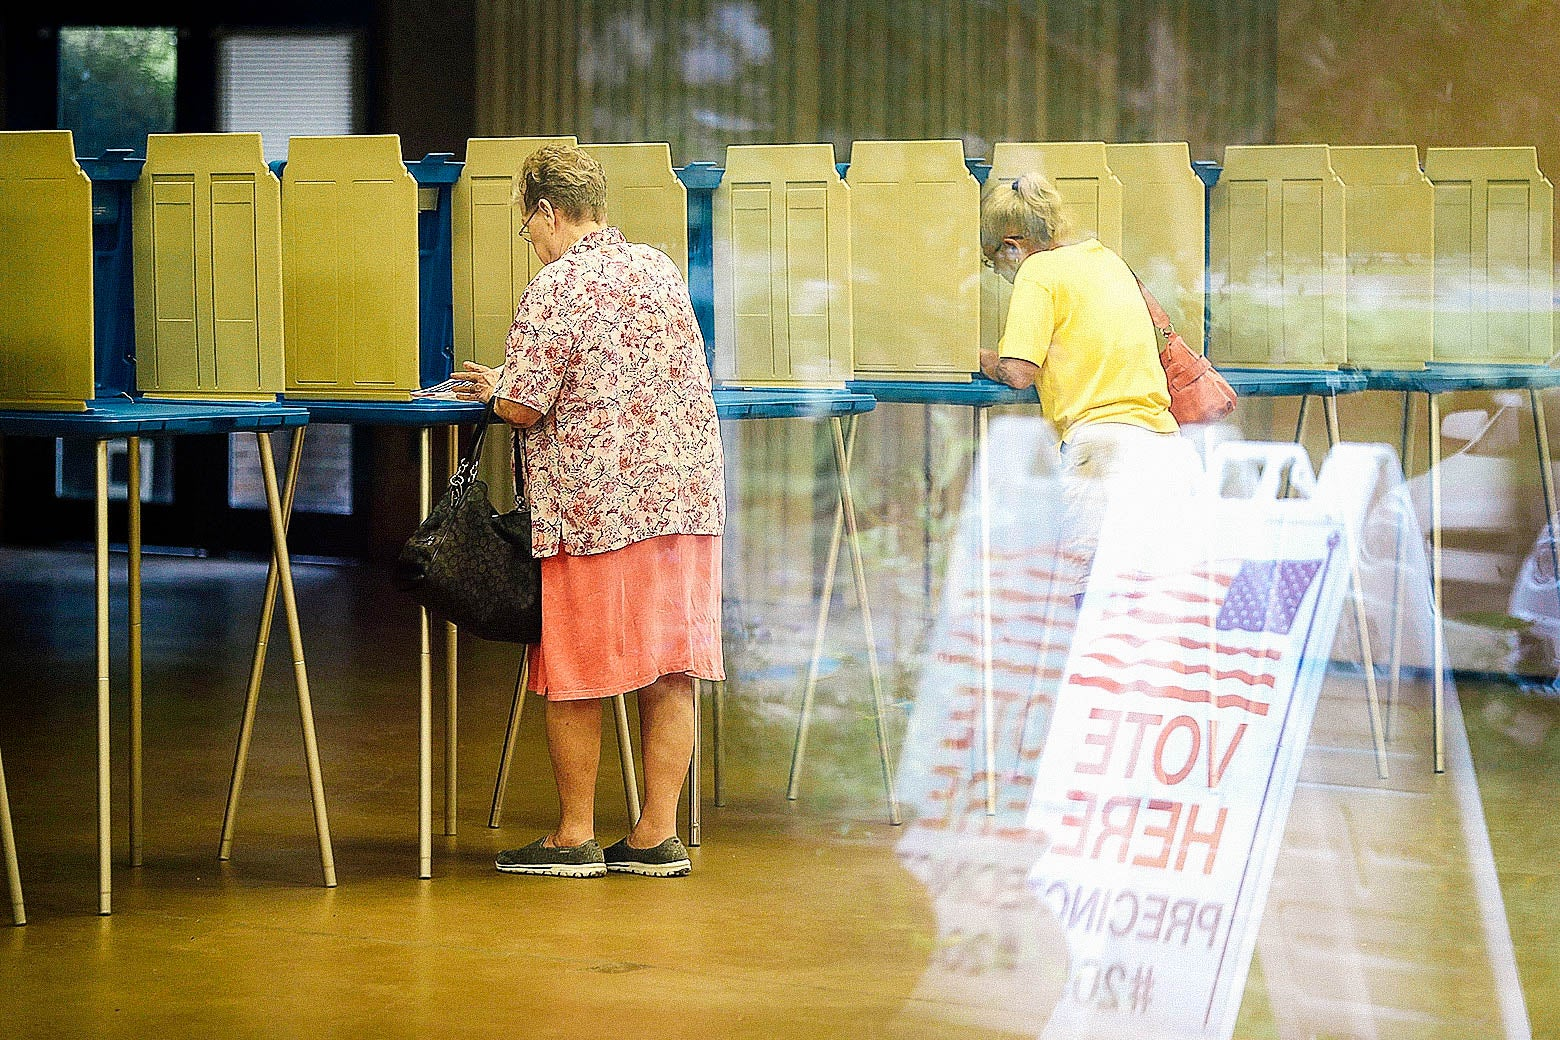 Voters stand at voting booths.